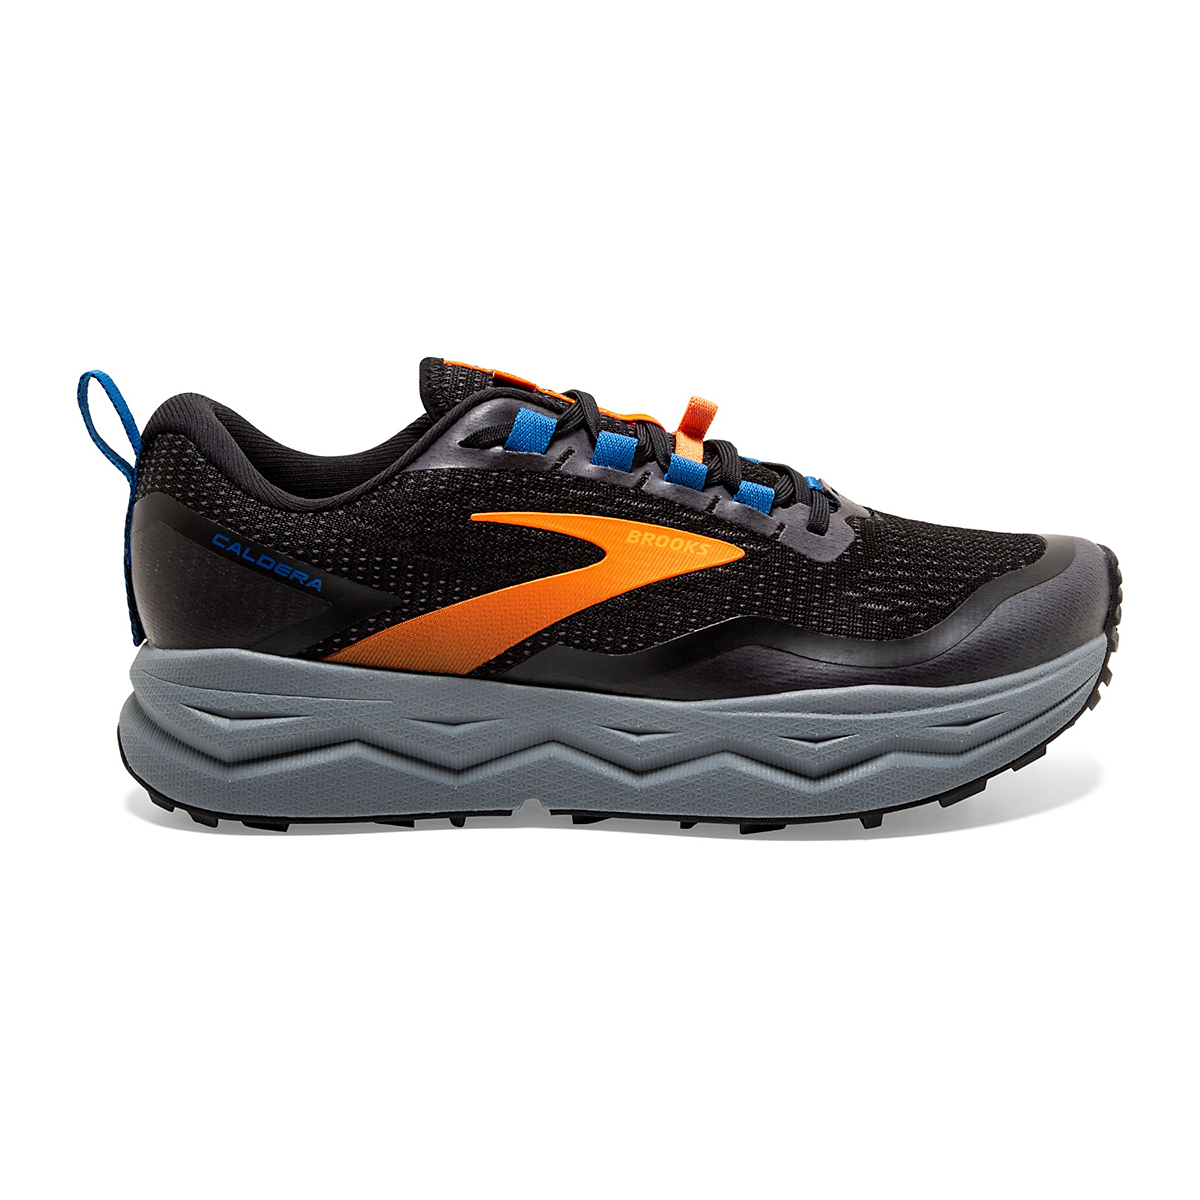 Men's Brooks Caldera 5 Trail Running Shoe  - Color: Black/Orange  - Size: 7 - Width: Regular, Black/Orange, large, image 1